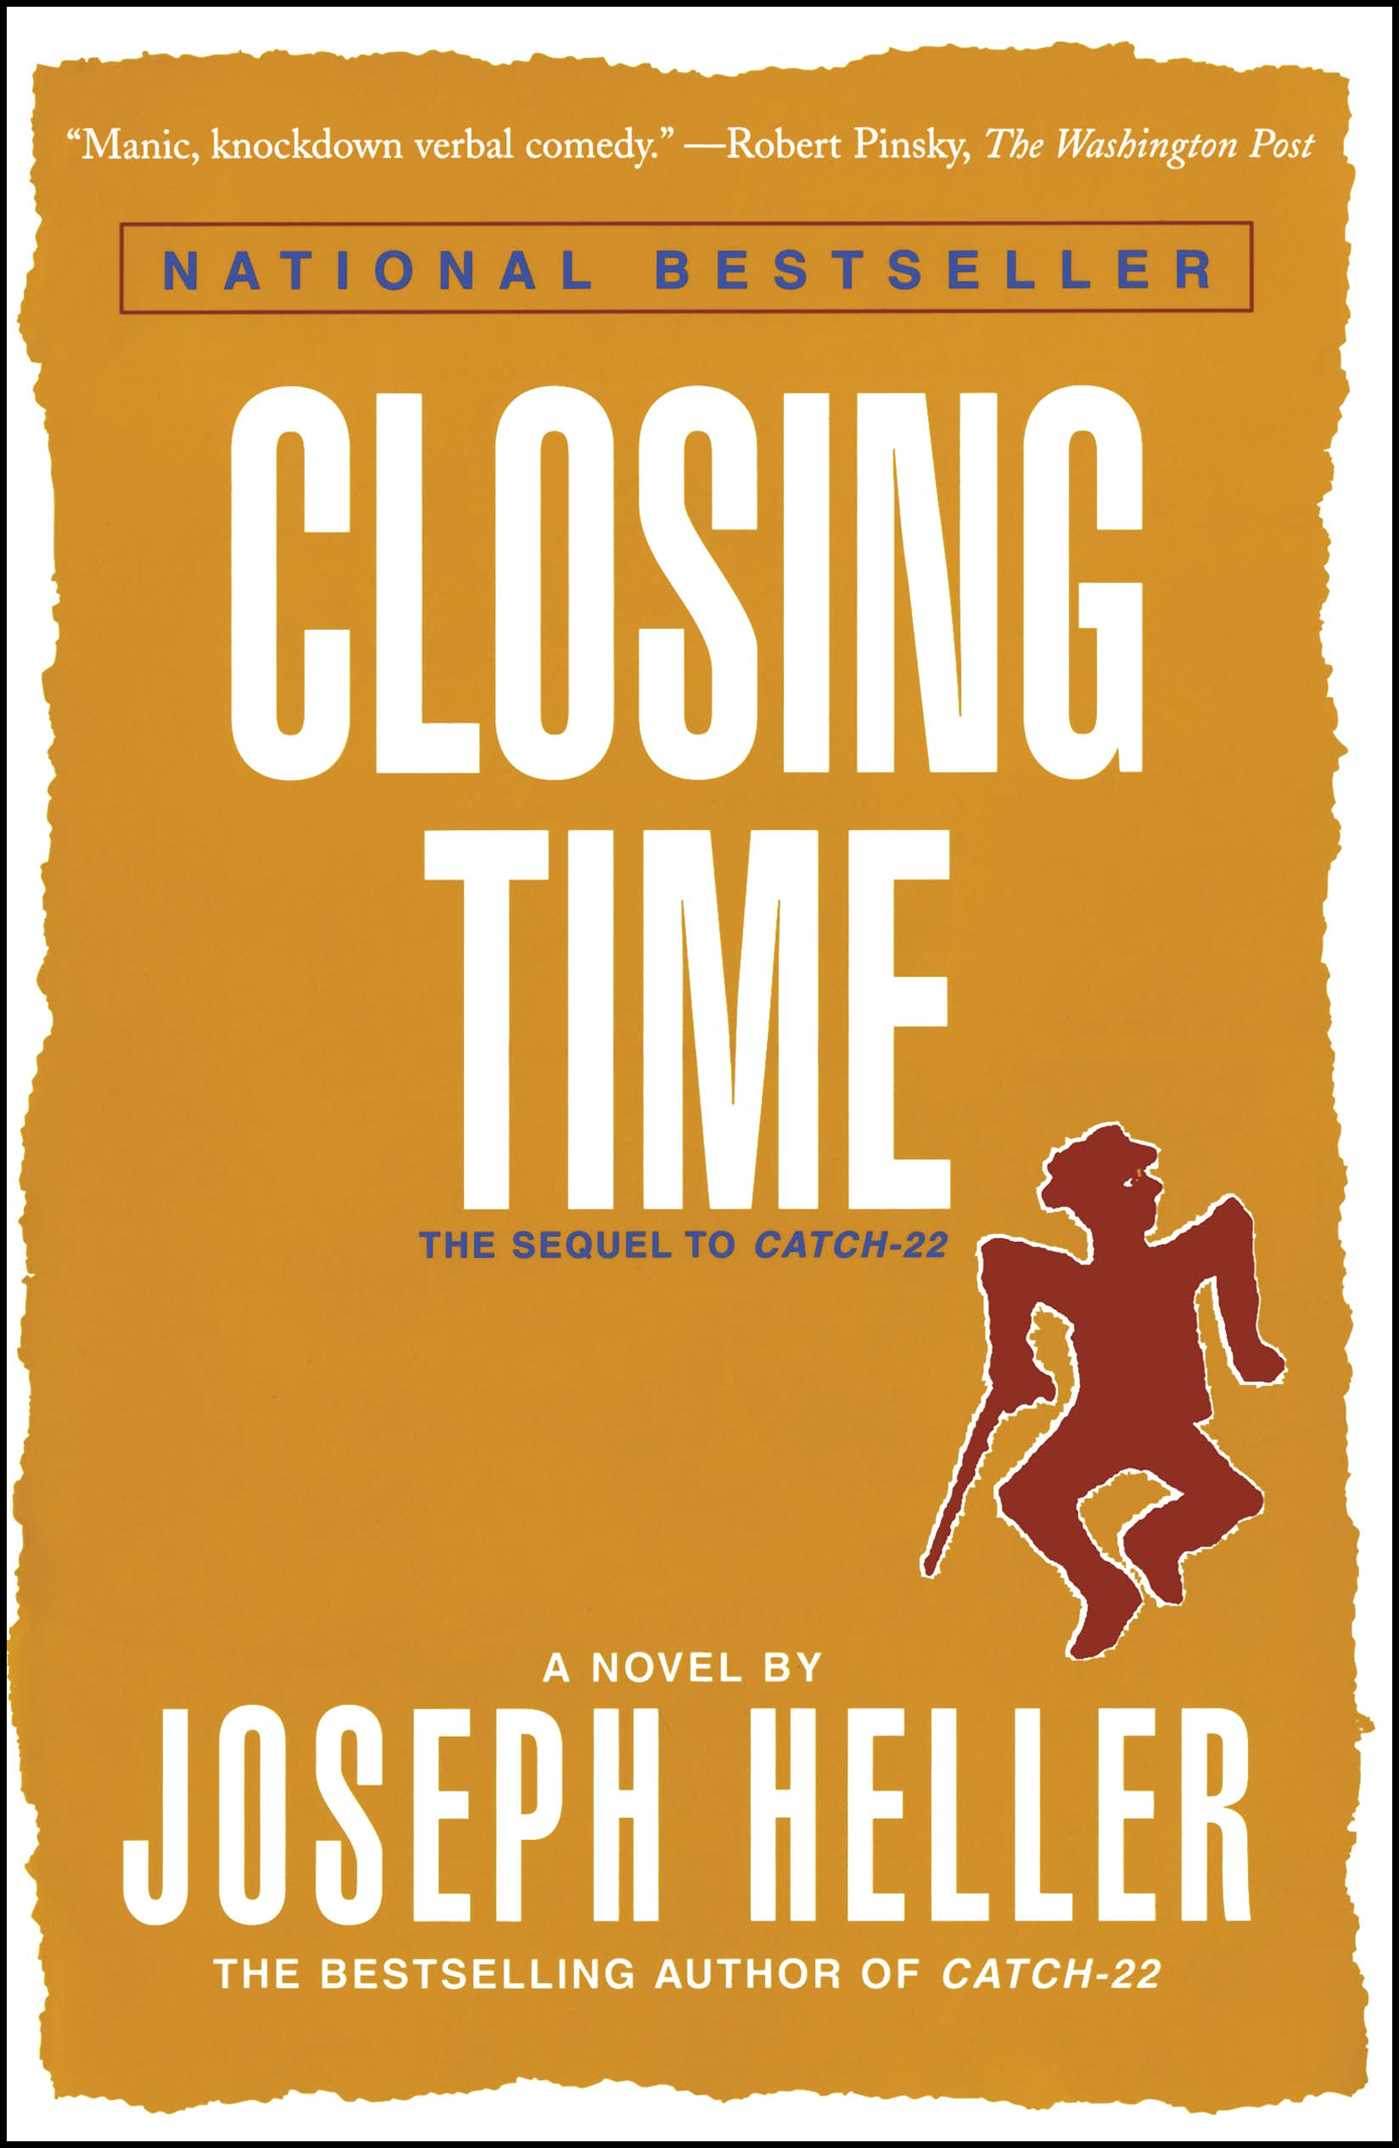 Book Cover Image (jpg): Closing Time